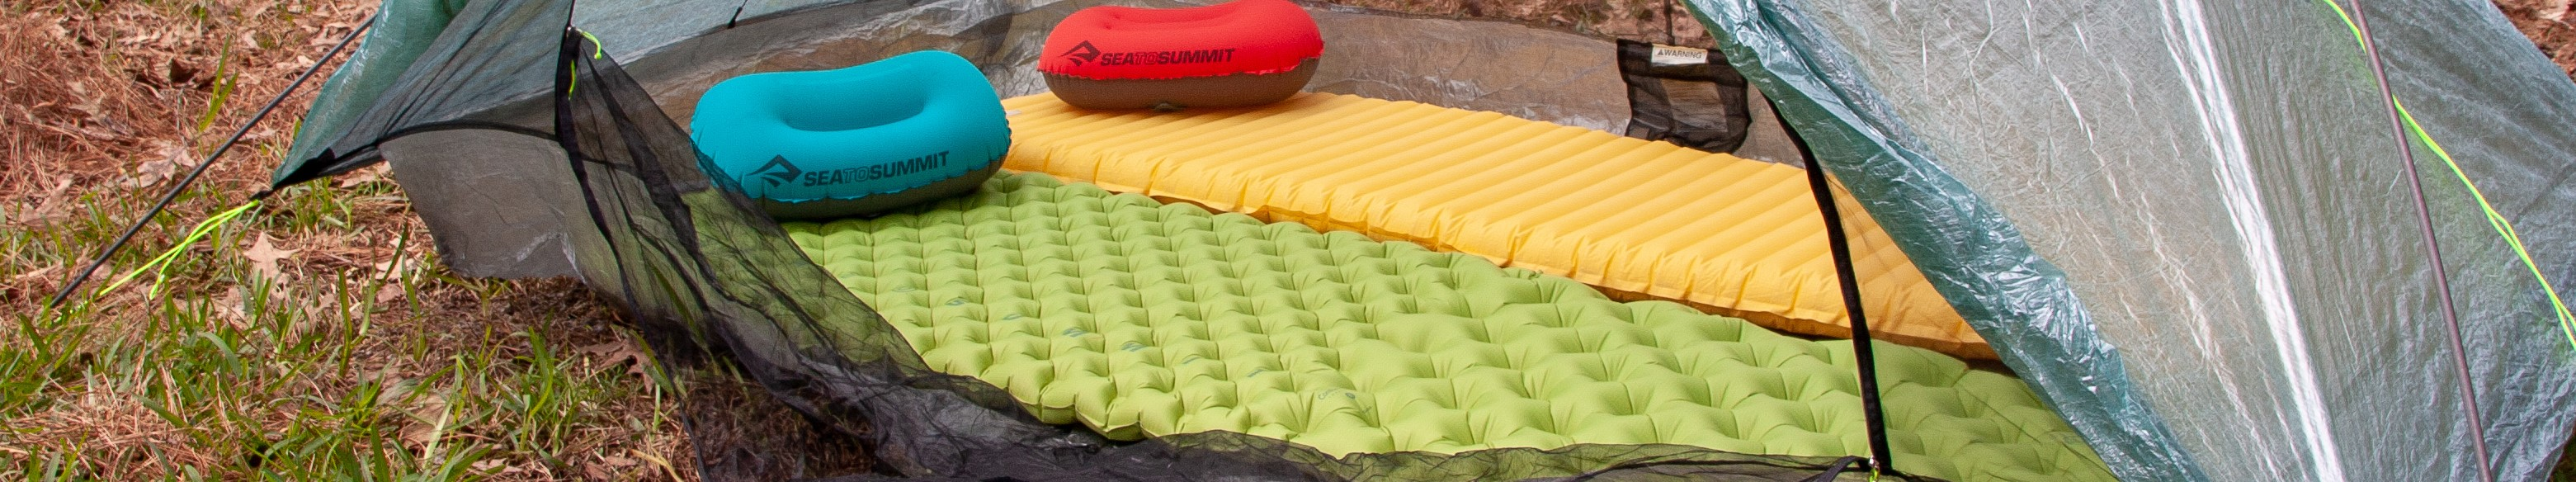 Best Camping Mattresses for Bad Back Reviewed in Detail